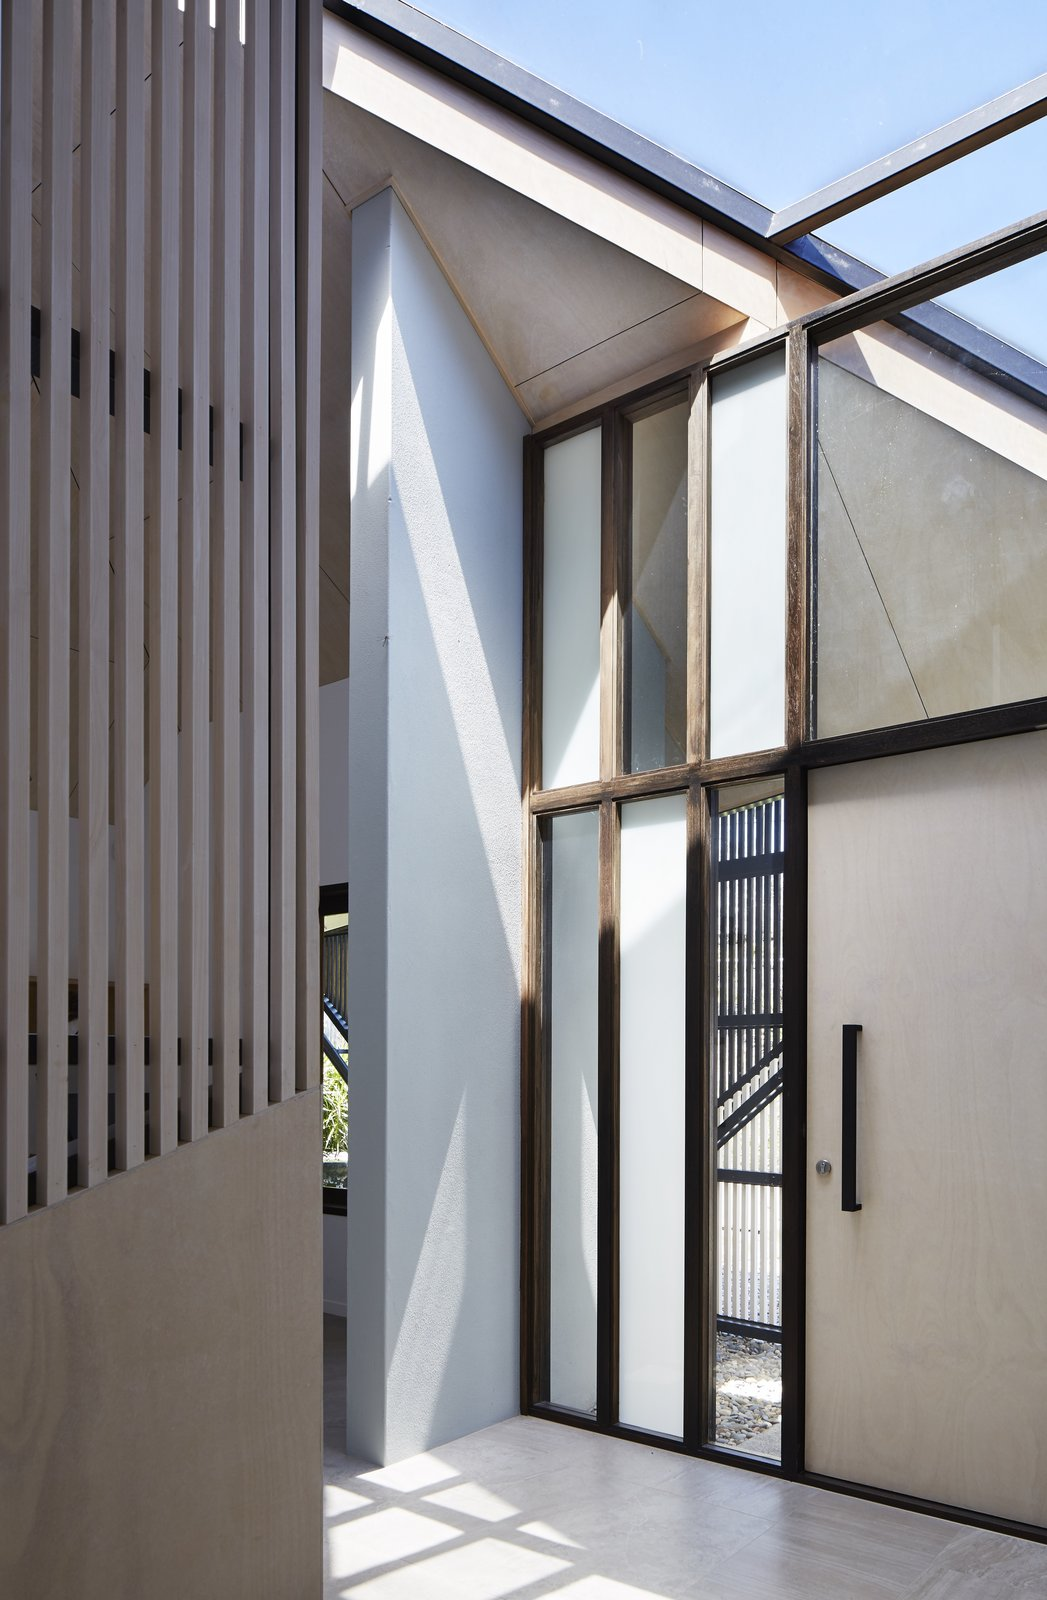 Hallway  Photo 3 of 12 in An Edgy Slatted Facade Conceals a Striking Indoor/Outdoor Home in Brisbane